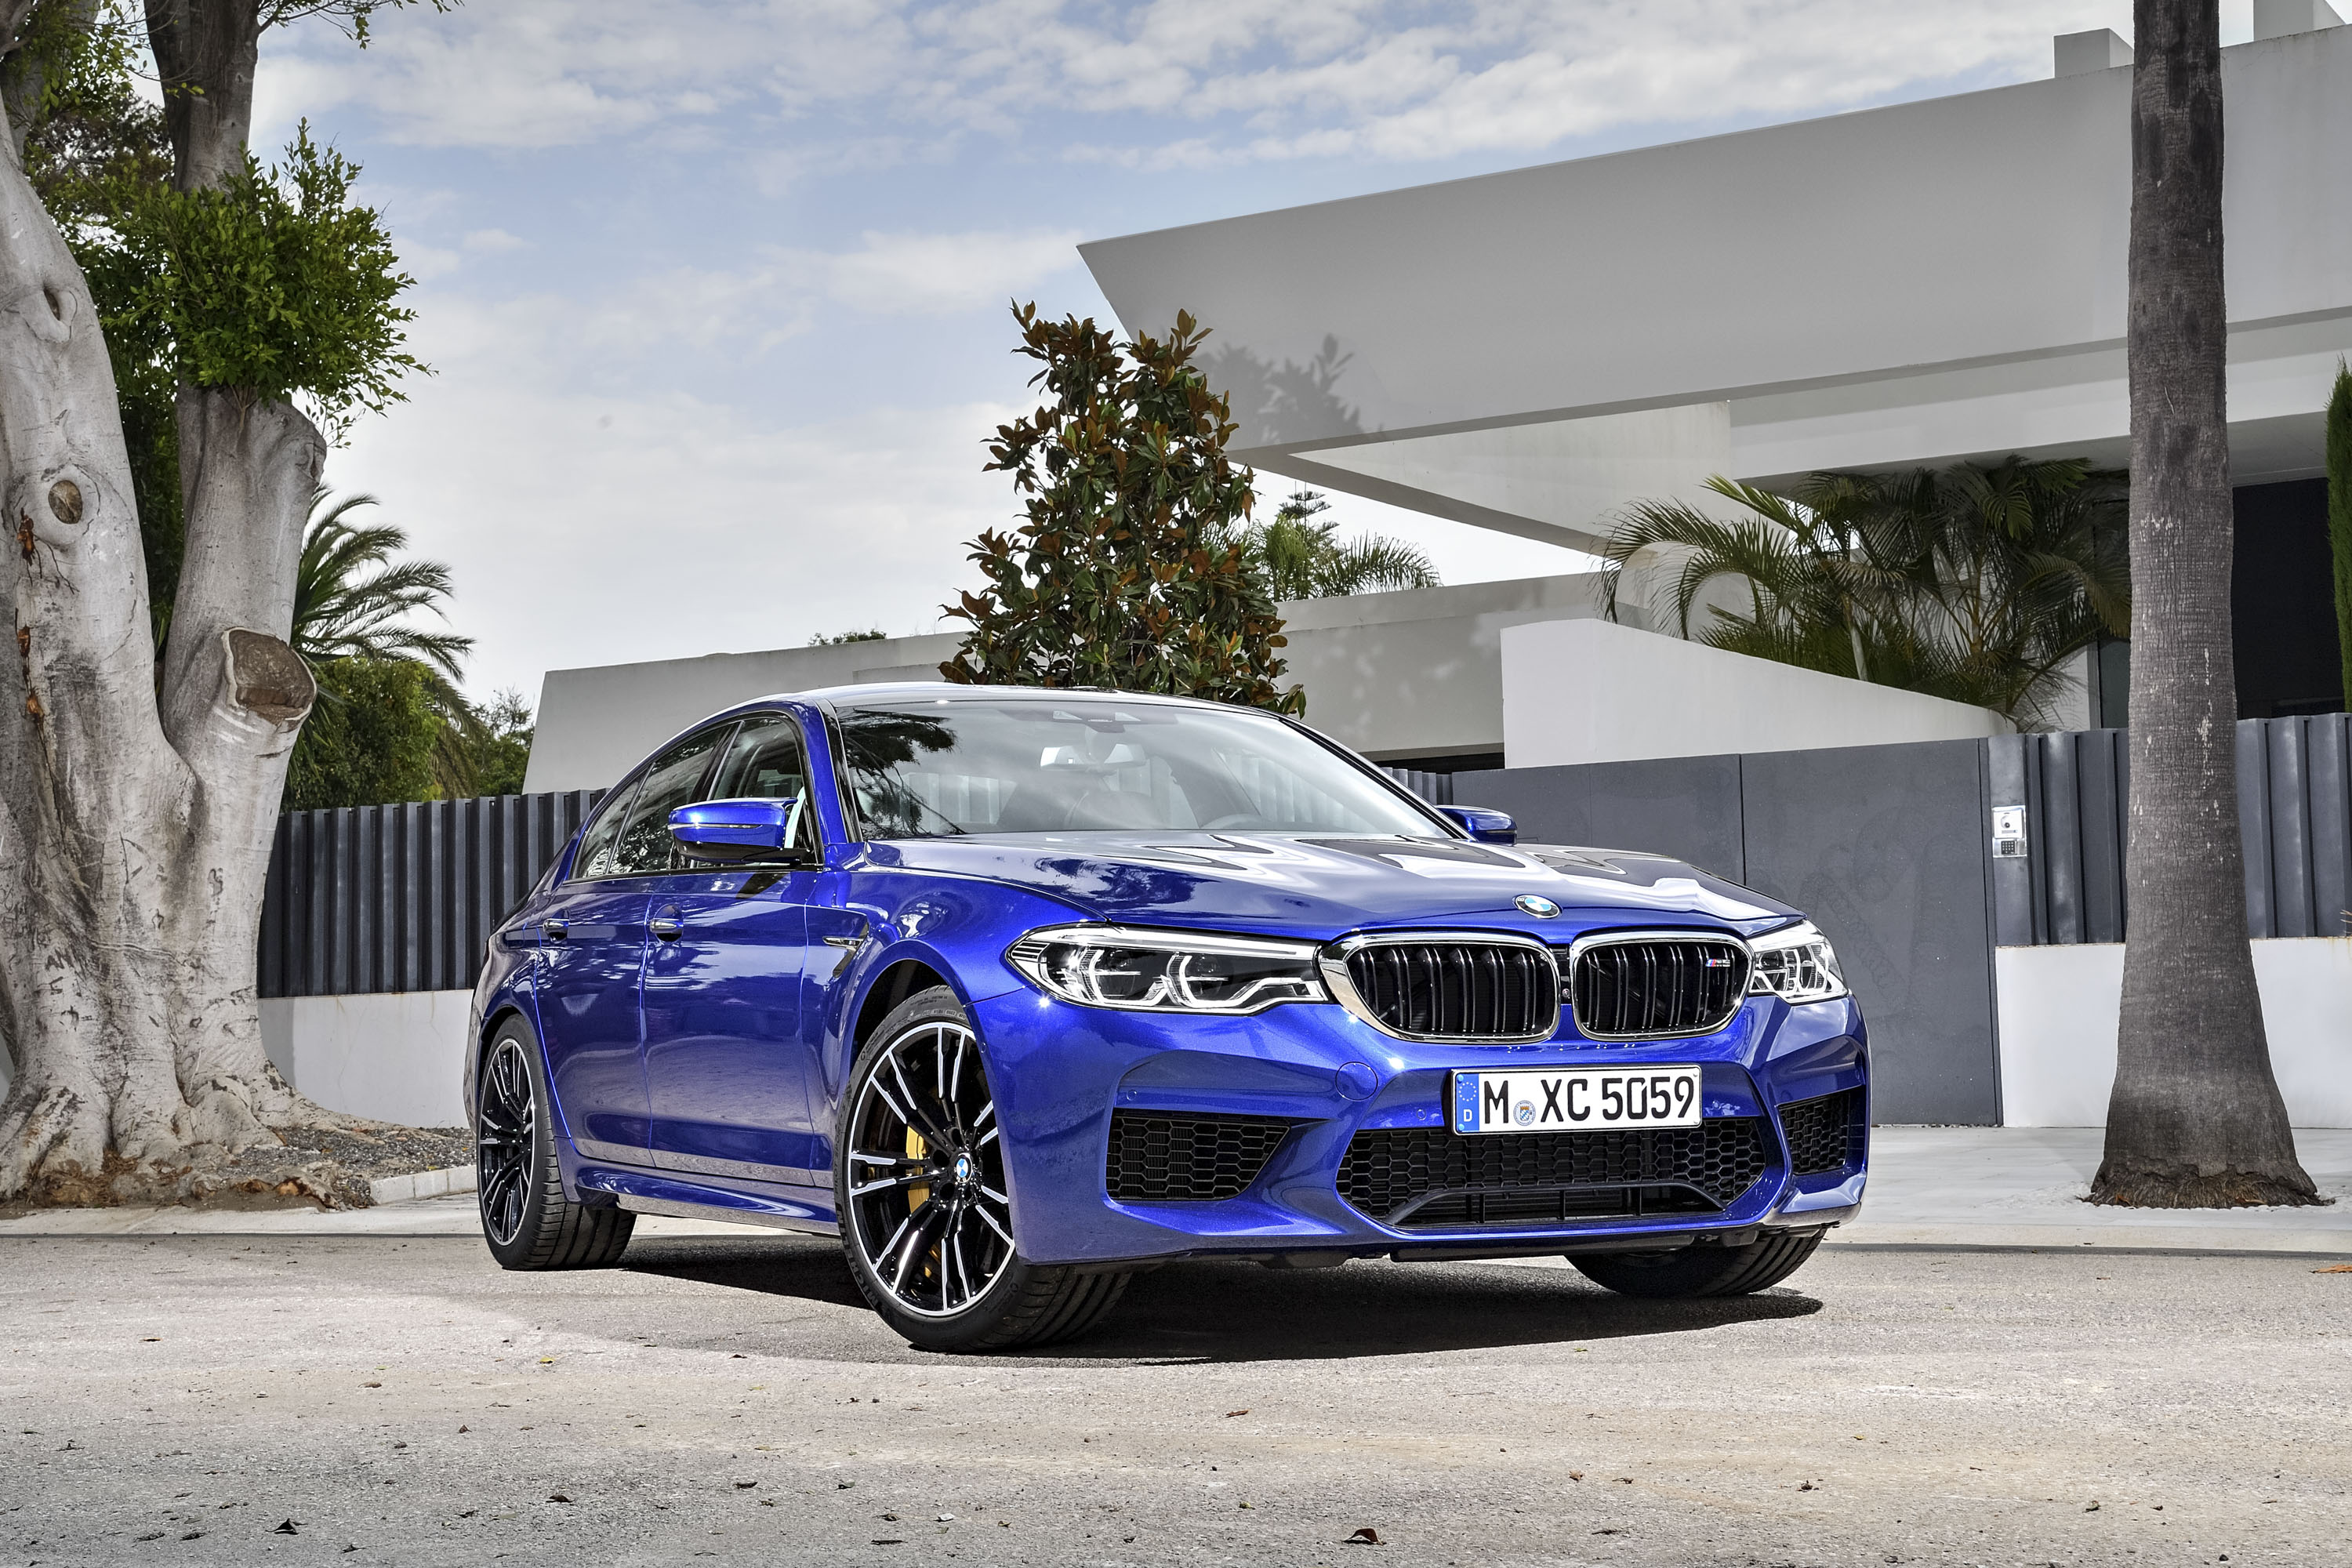 Wallpaper Of The Day: 2018 BMW M5 | Top Speed